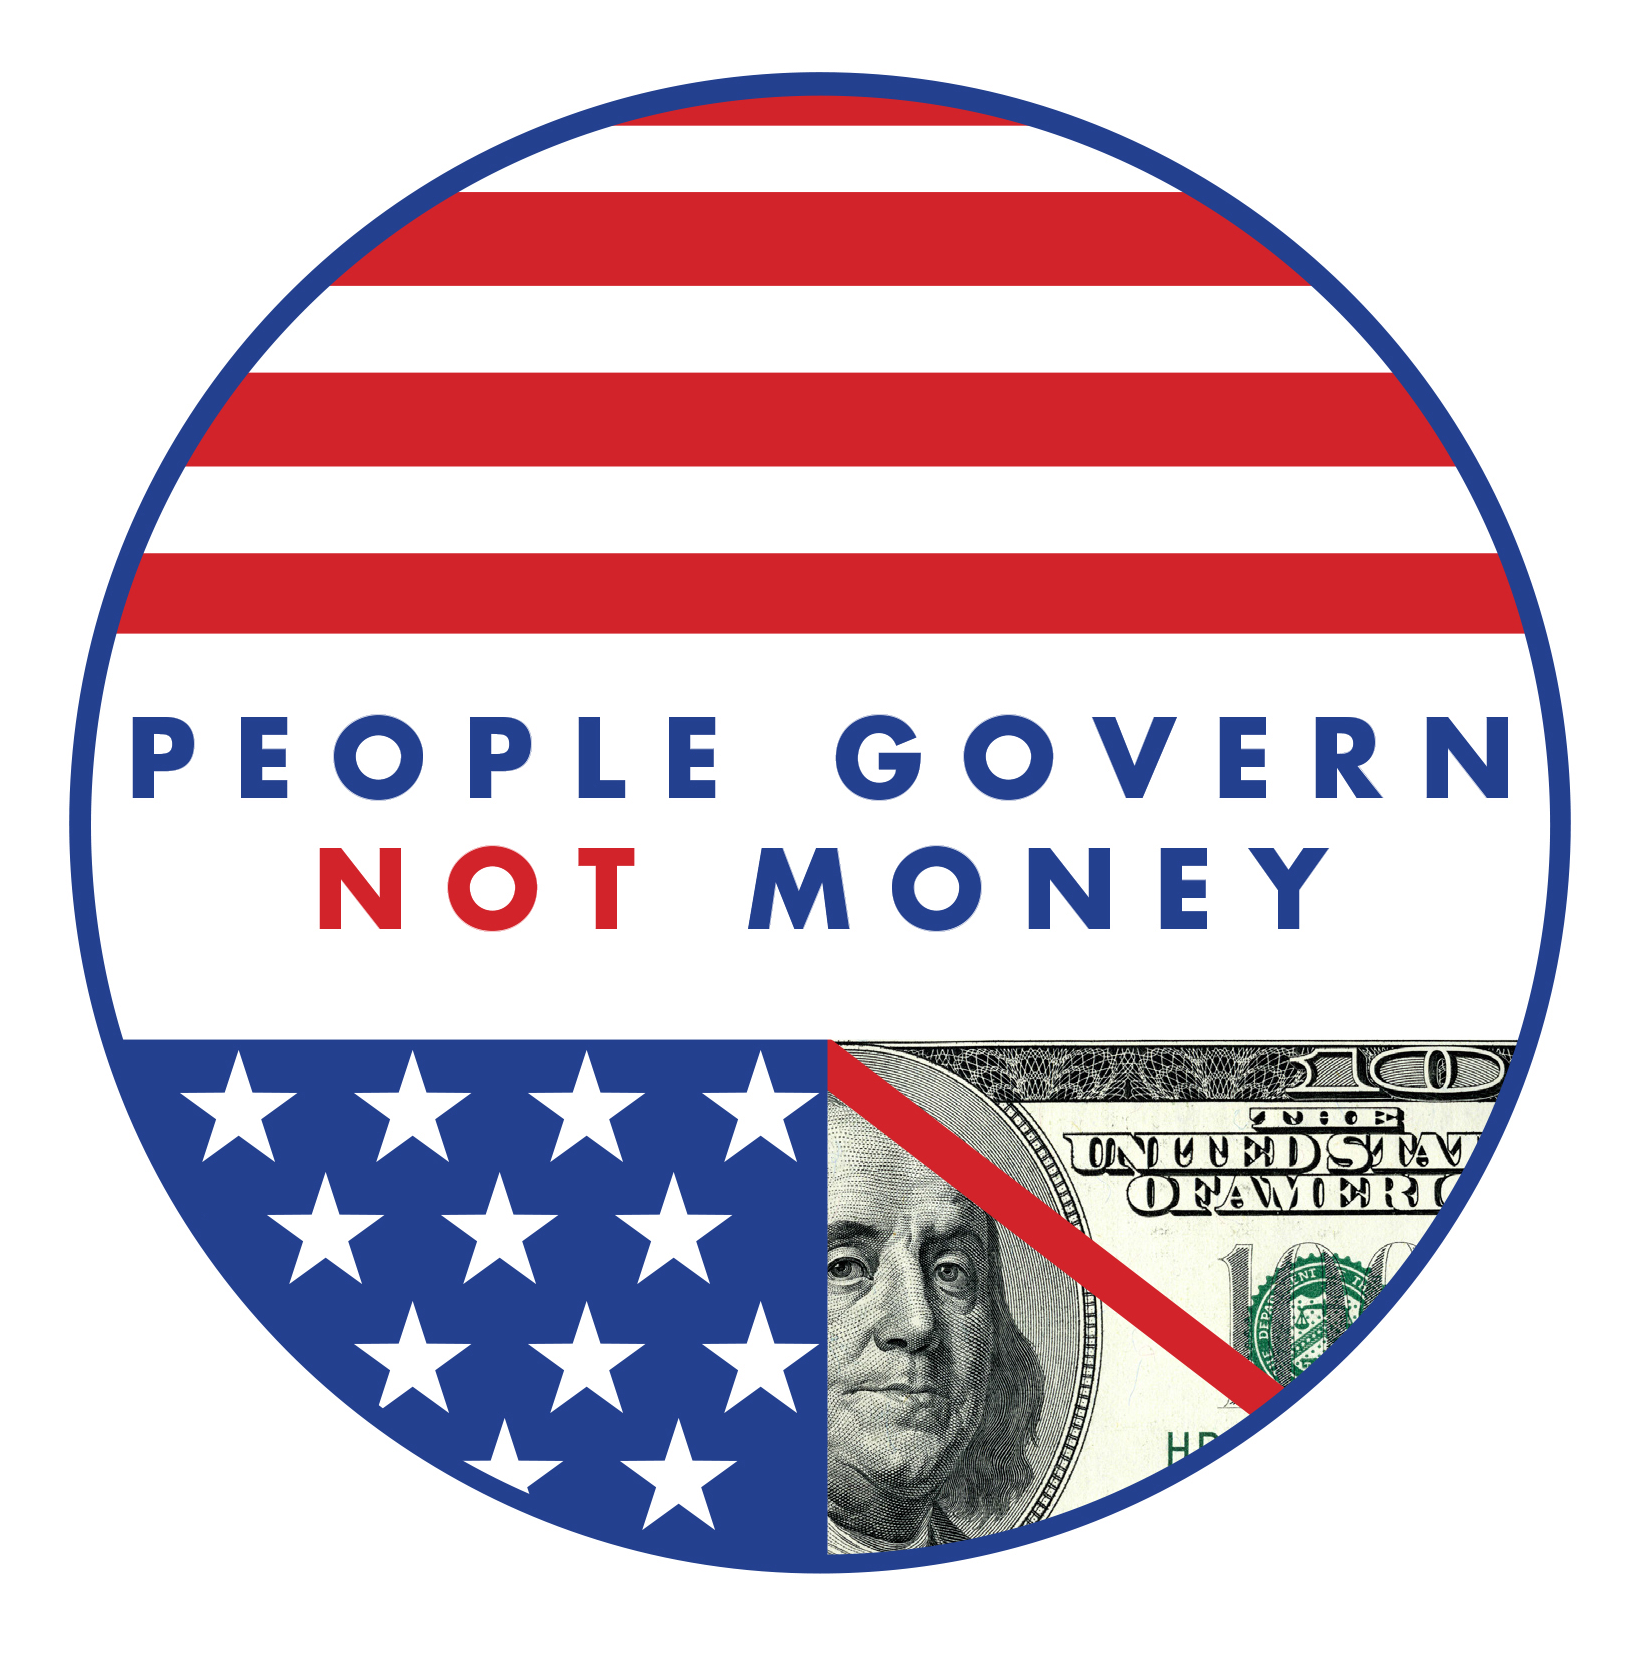 People_Govern_Not_Stickerdesign-3.png